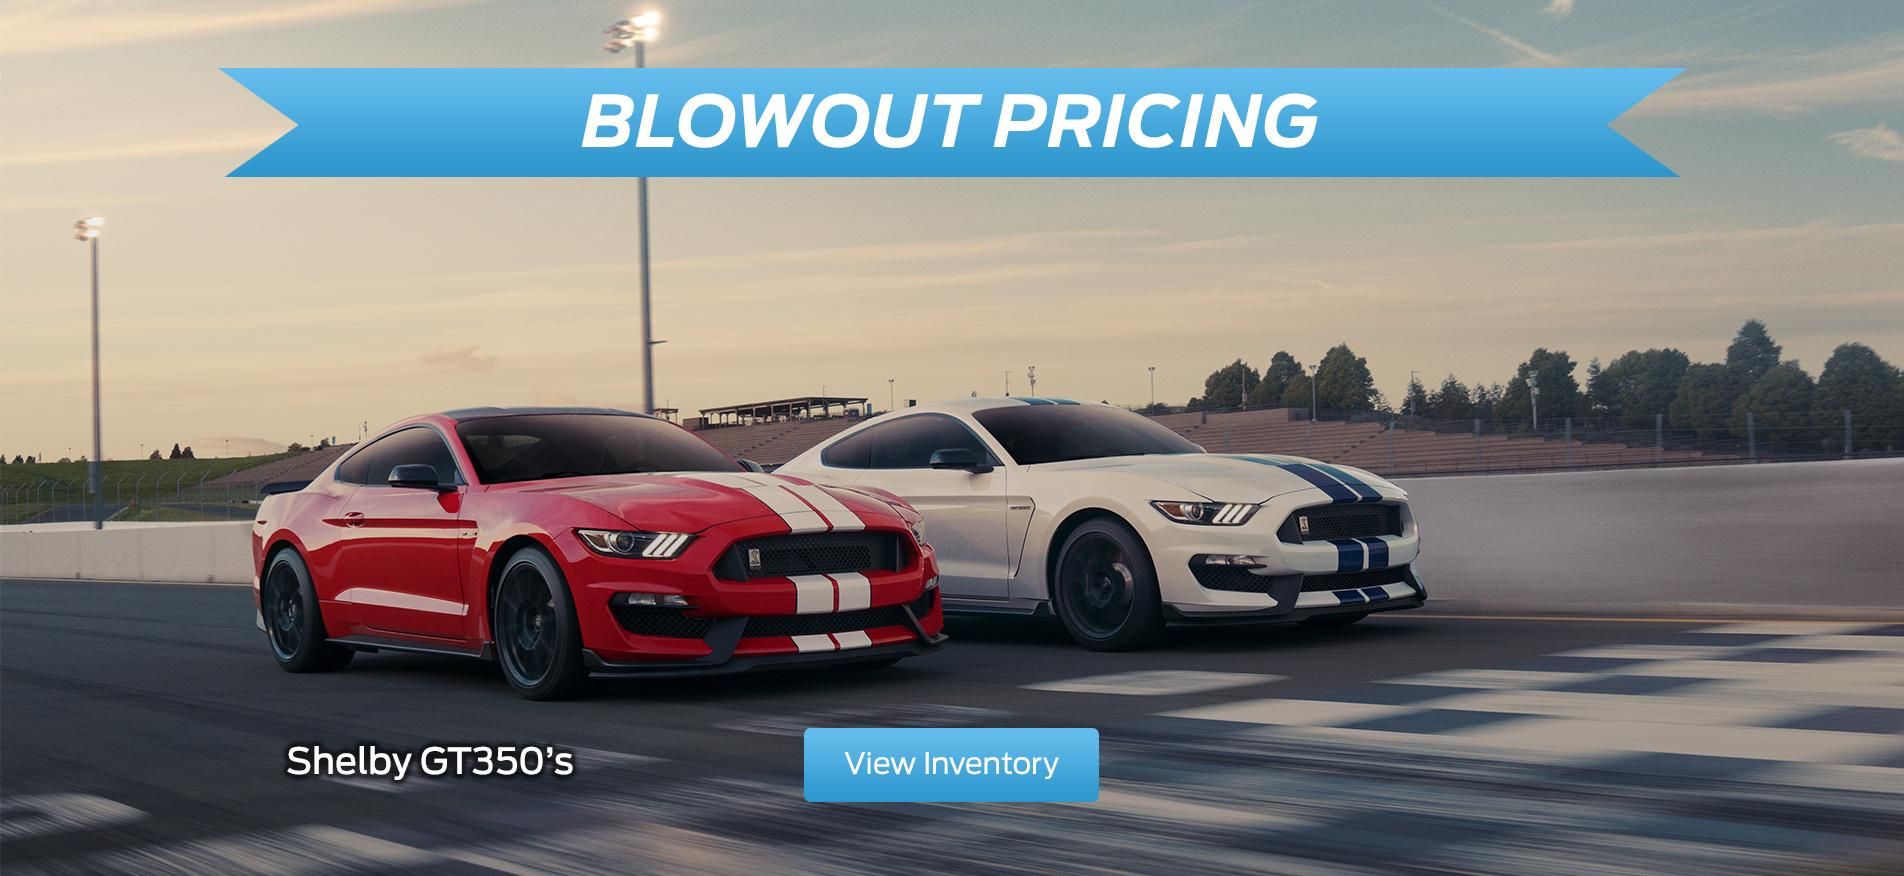 Blowout Pricing